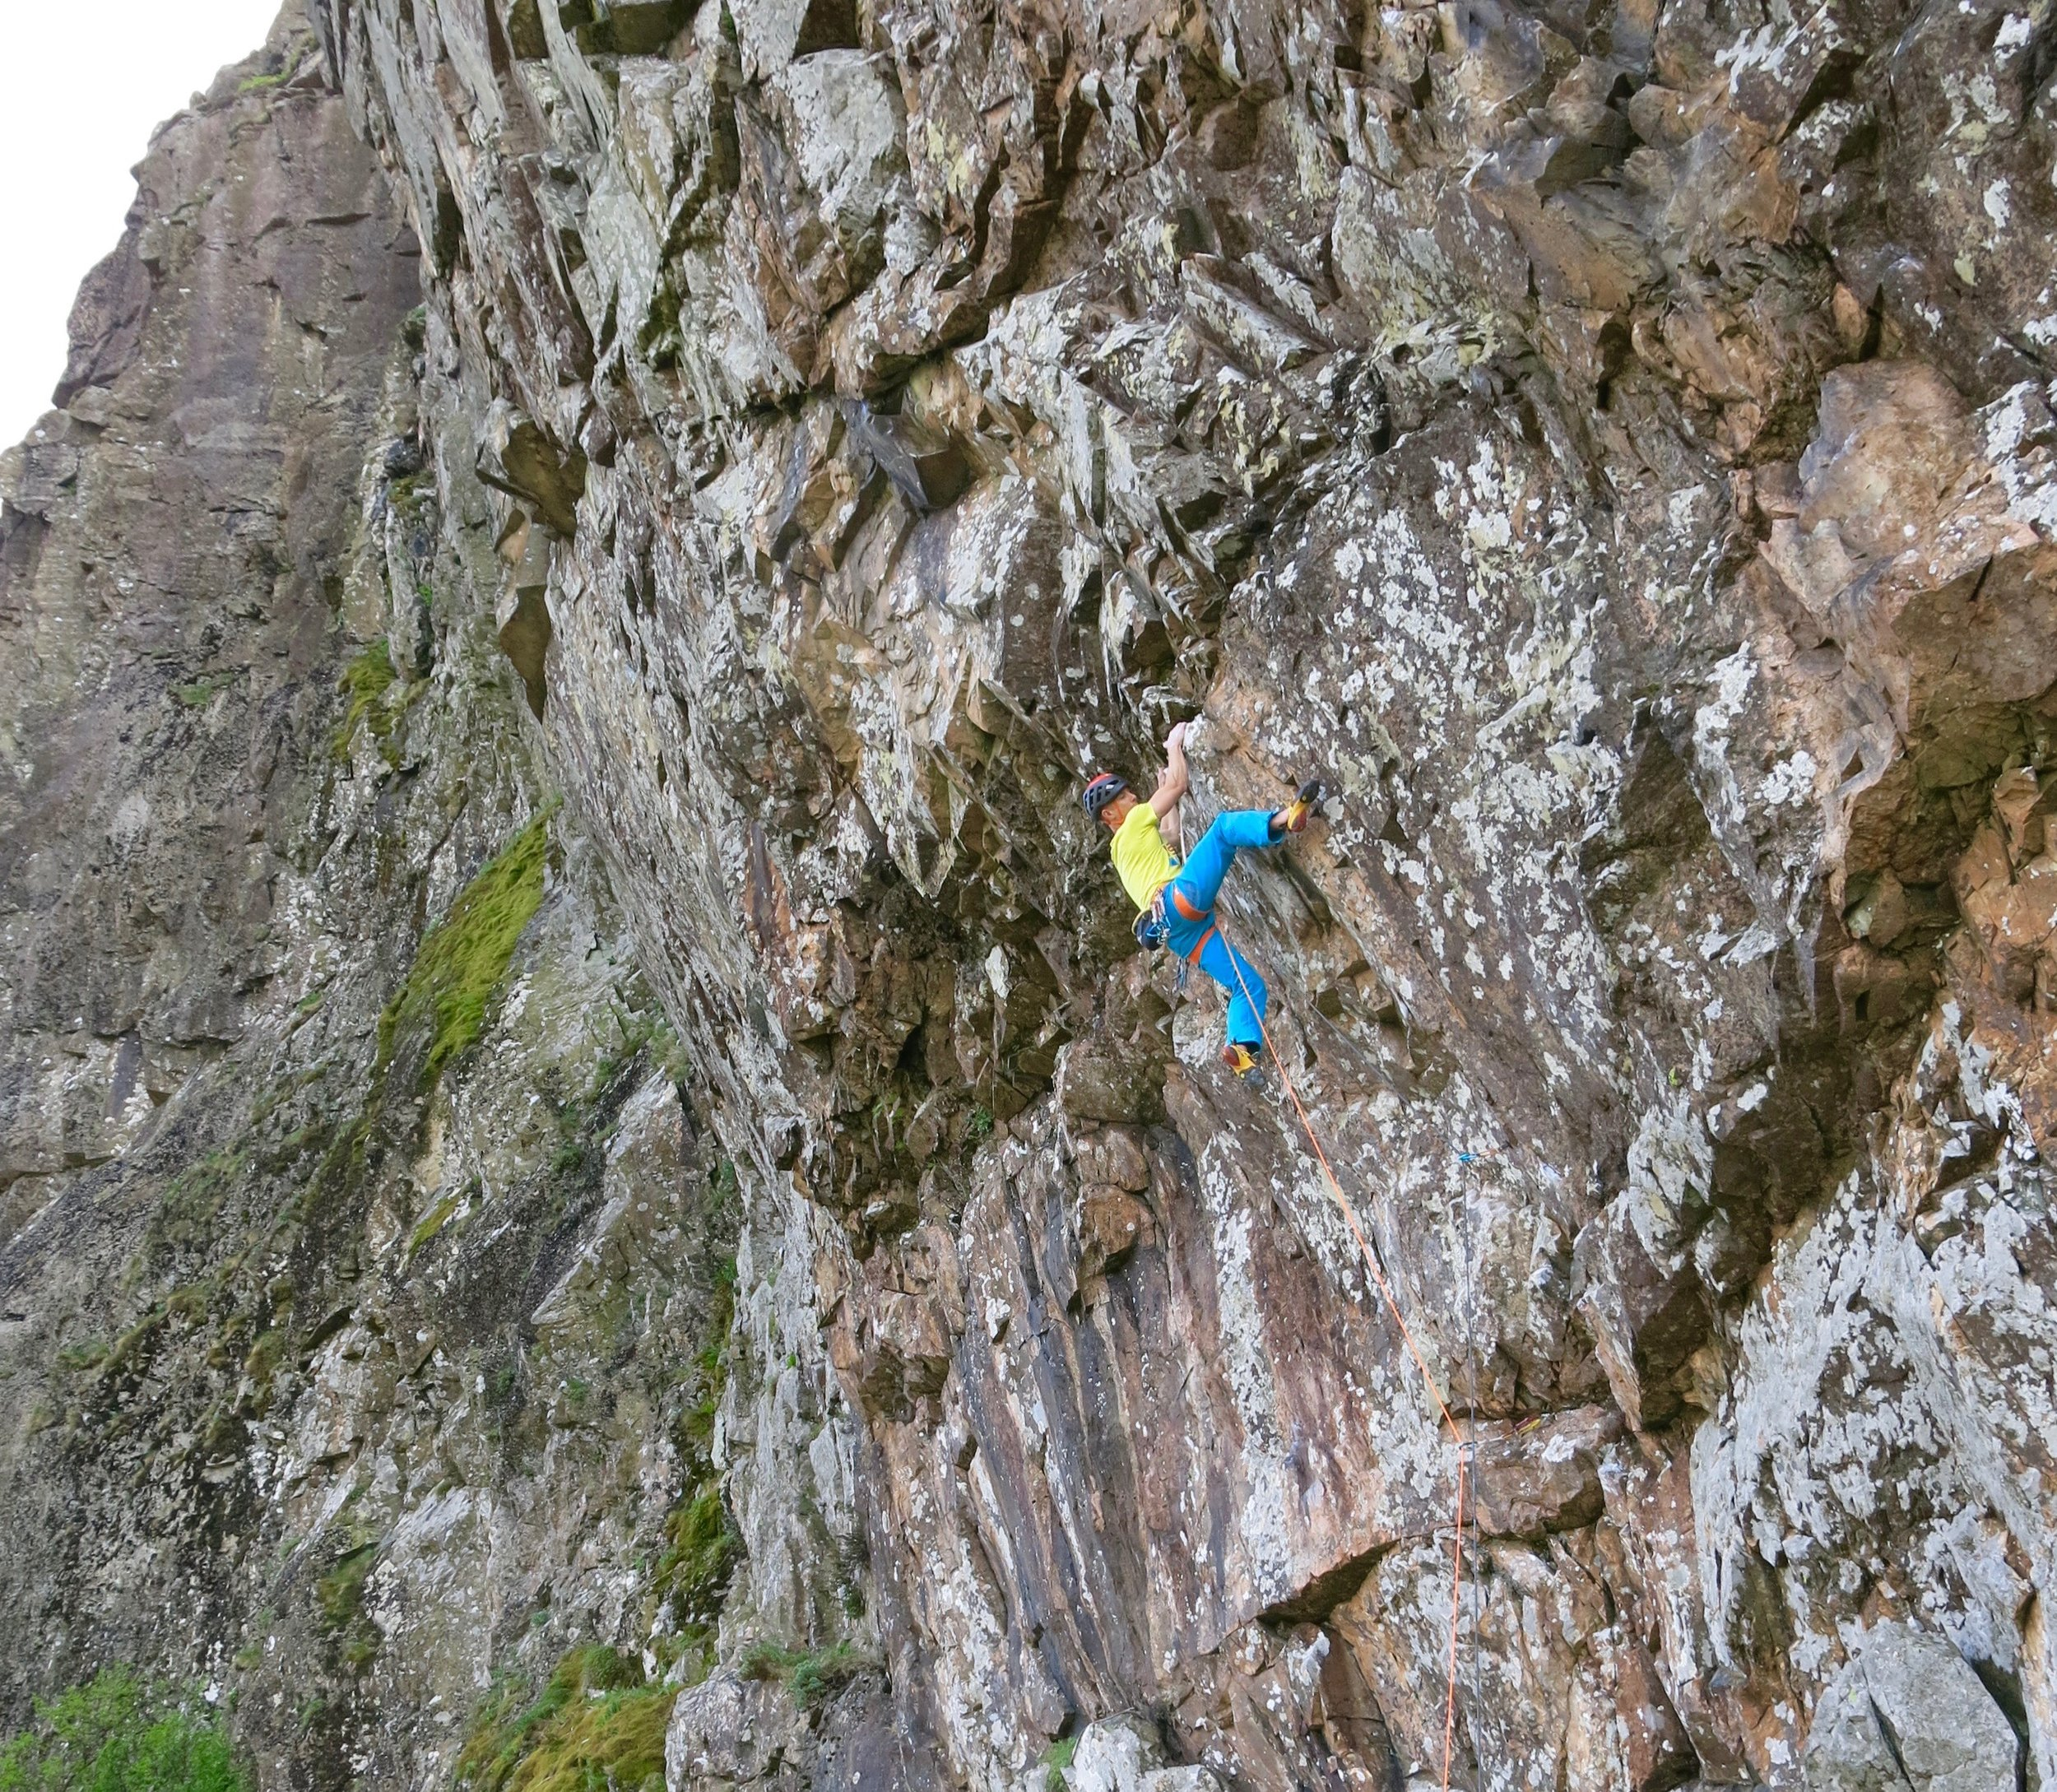 Fearless E9 6c, Dove Crag, 1st ascent in June 2018